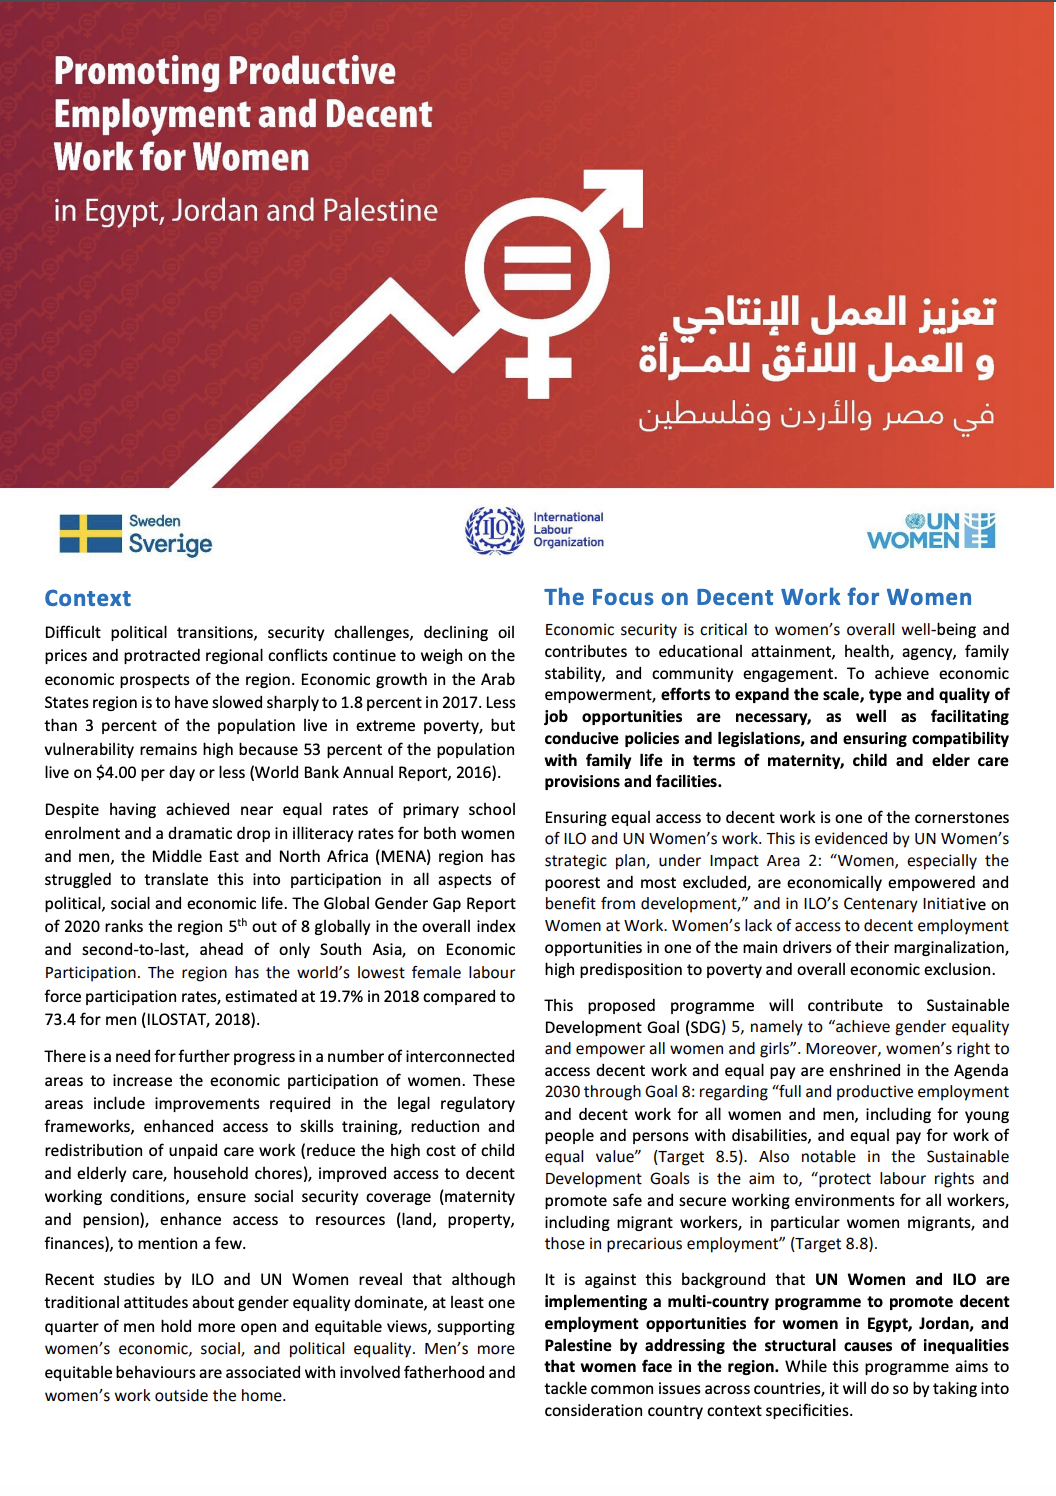 Promoting Productive Employment and Decent Work for Women in Egypt, Jordan and Palestine